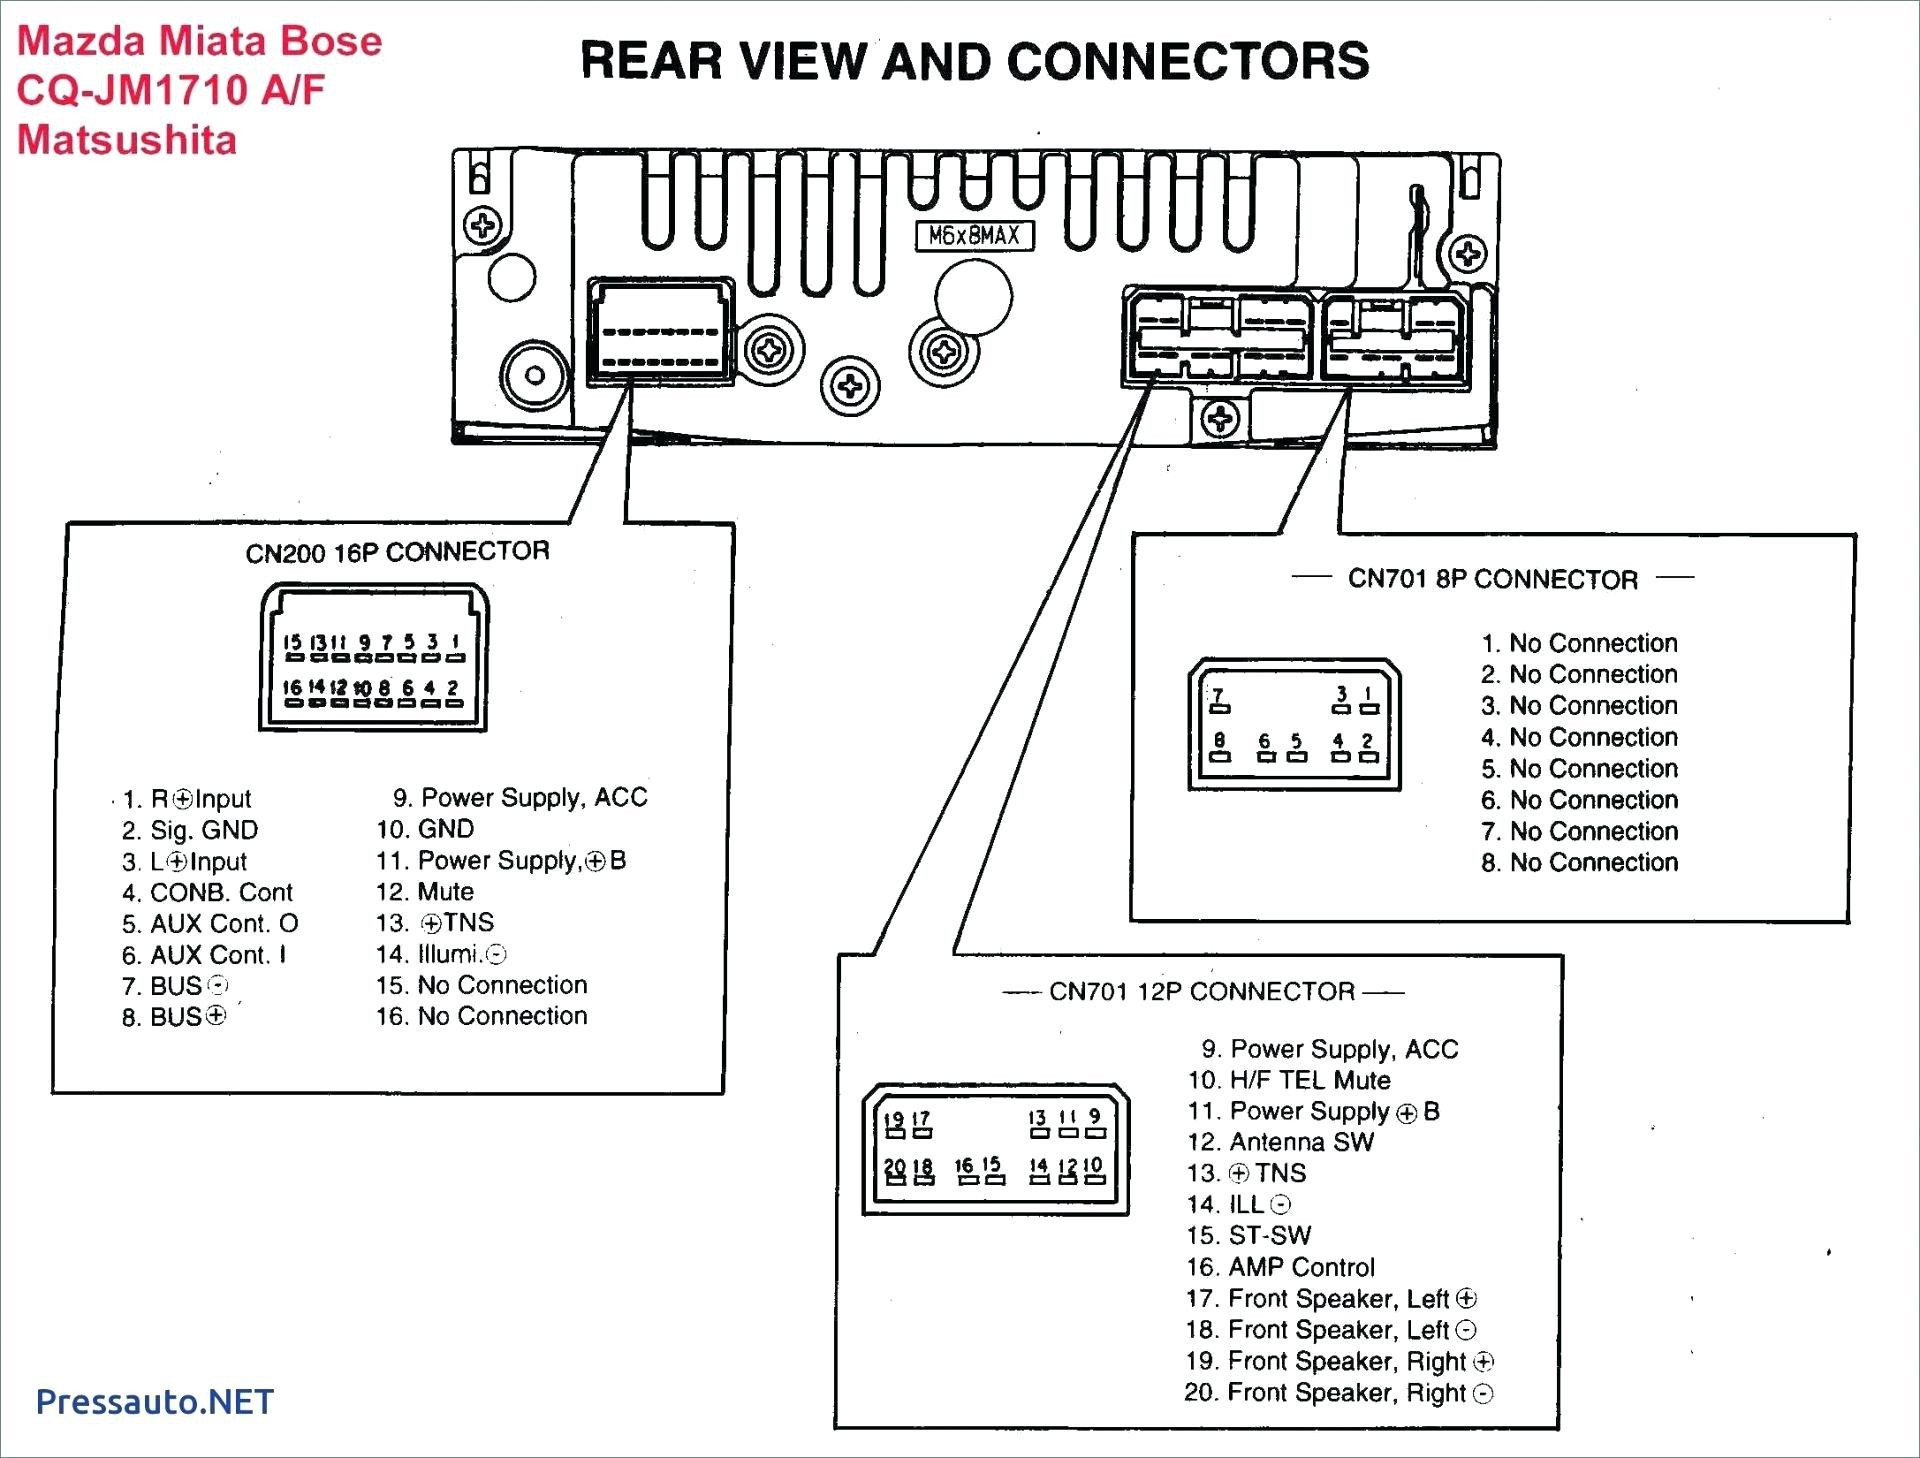 Wiring Diagram 5 Channel 13 Kicker - Wiring Diagram Detailed - 5 Channel Amp Wiring Diagram